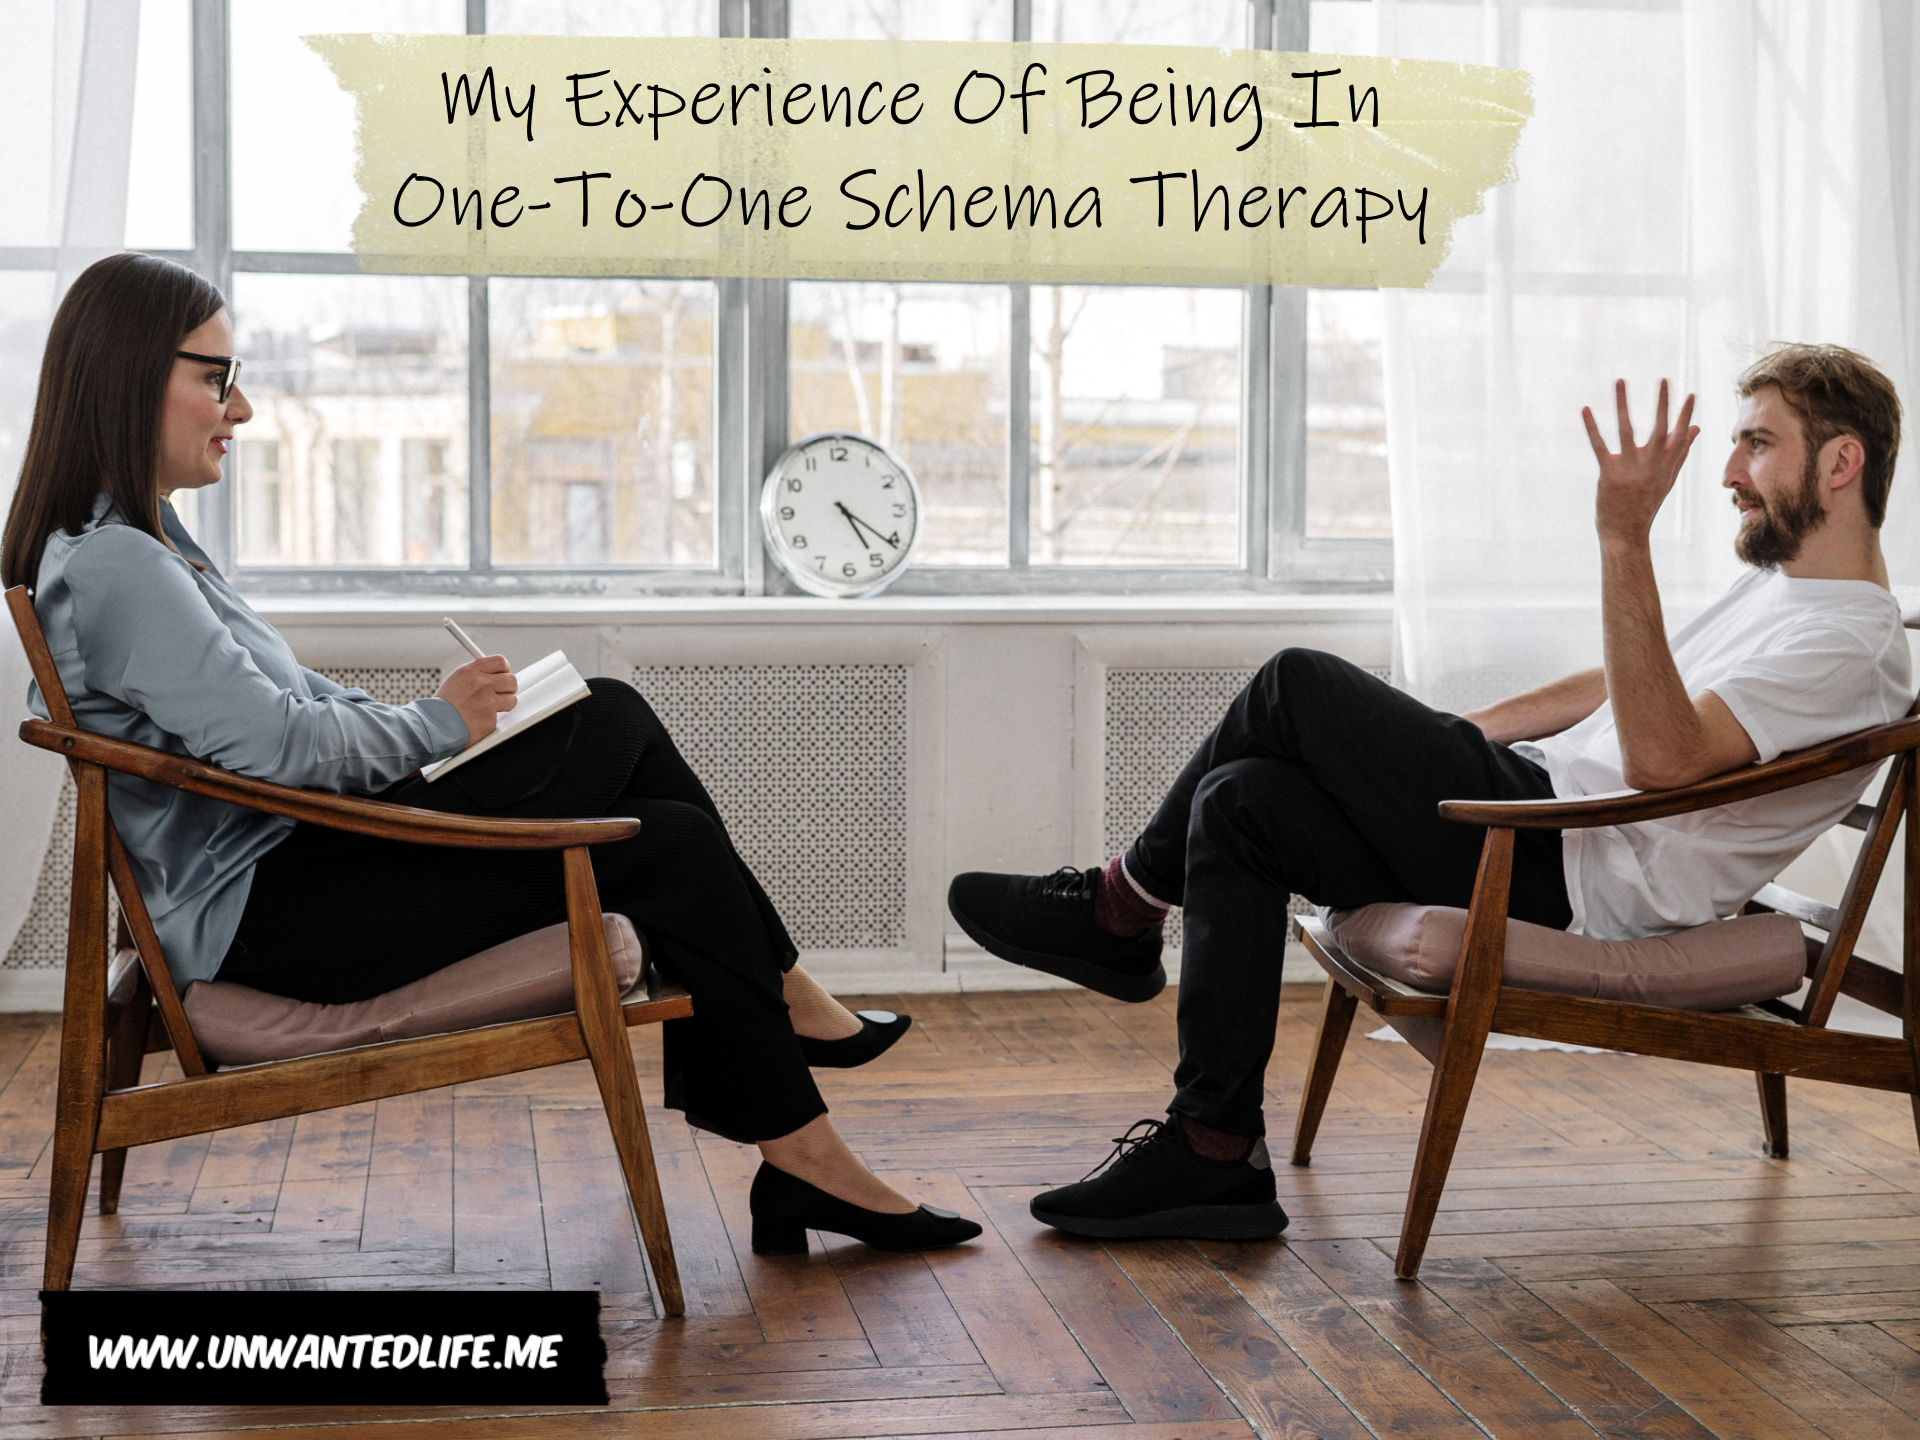 A photo of a man sitting in a chair talking to a therapist sitting in a chair and taking notes with the article title - My Experience Of Being In One-To-One Schema Therapy - above them